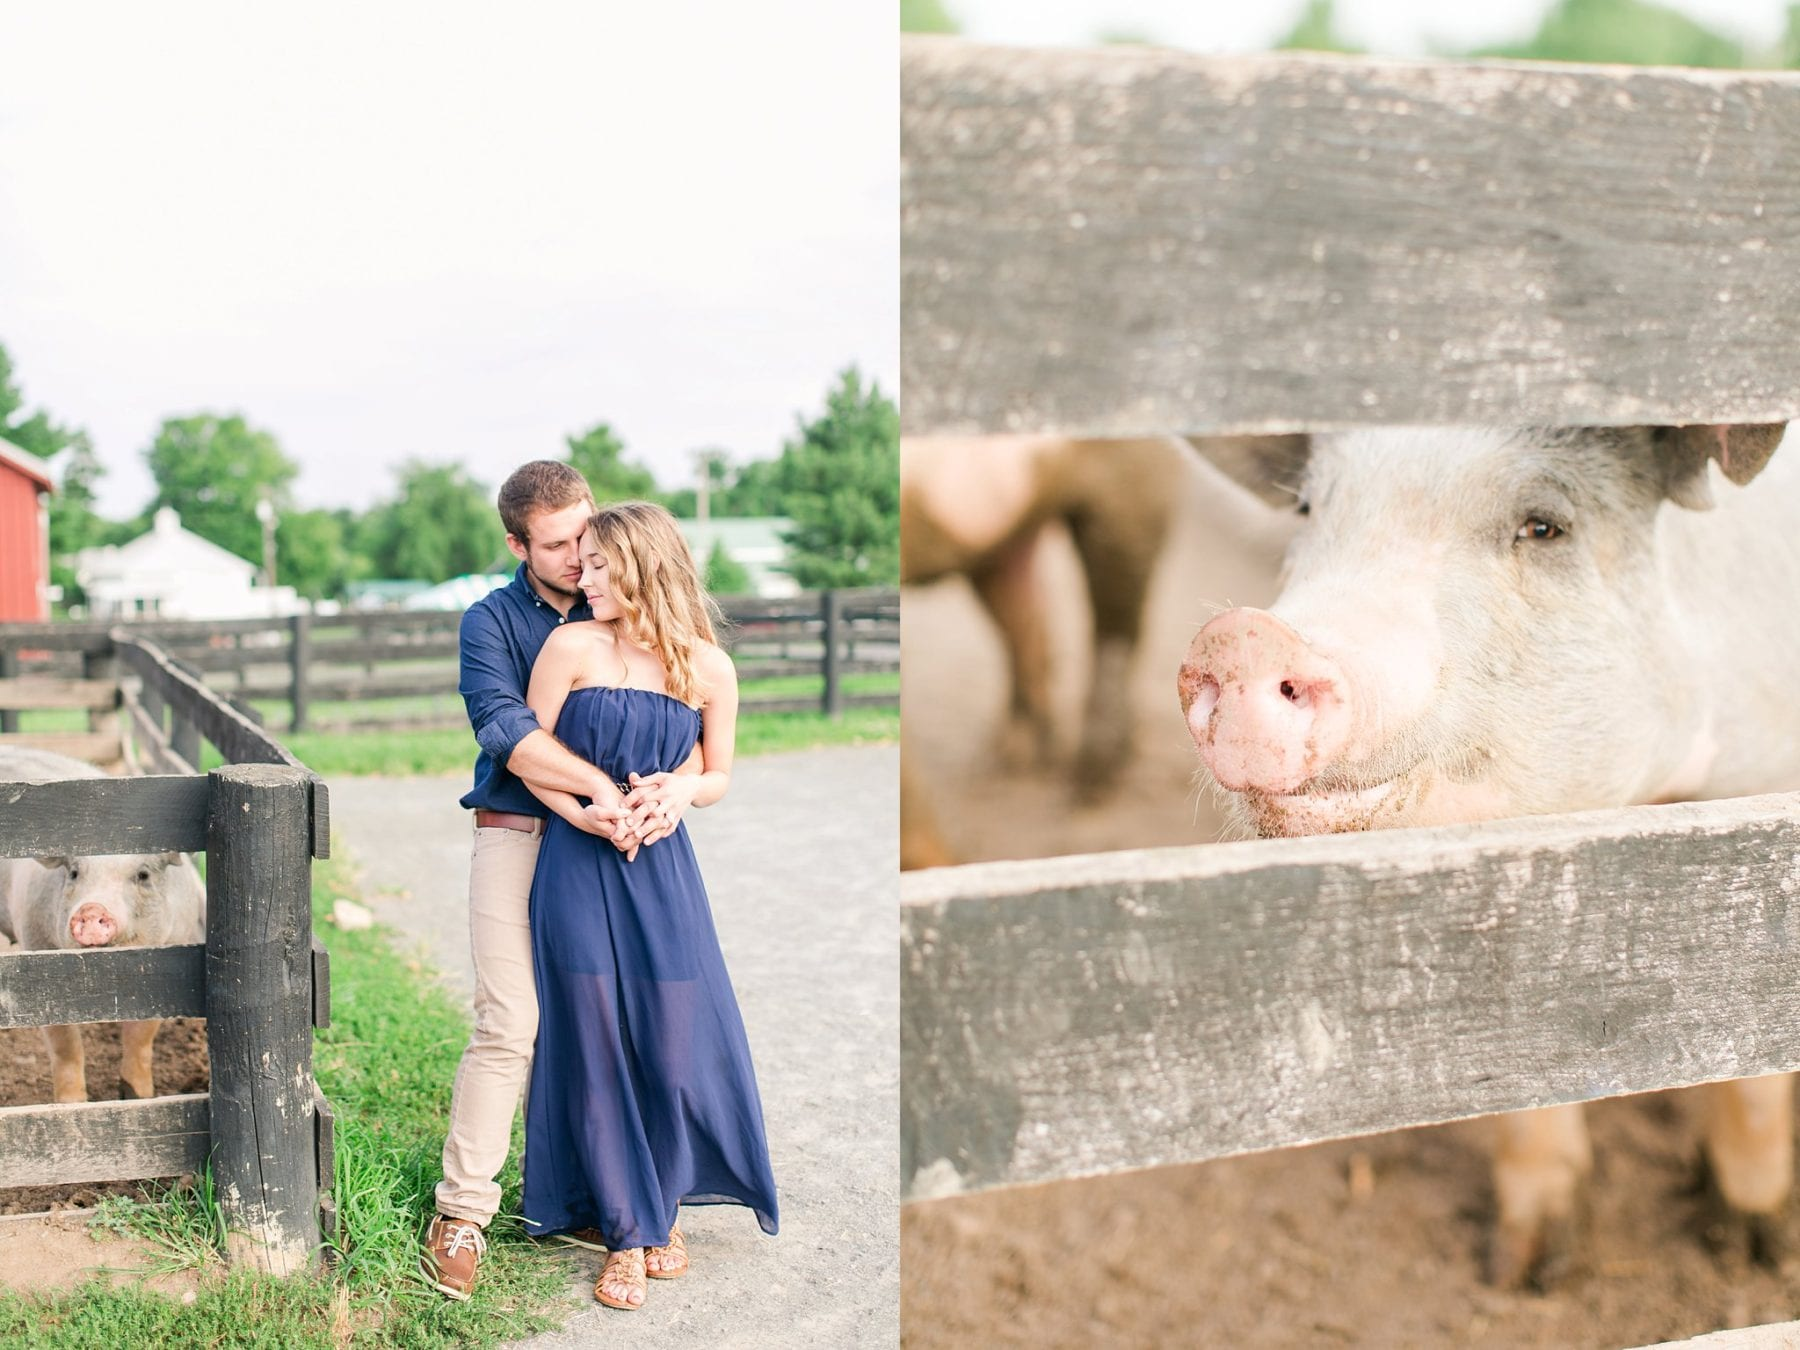 County Fair Engagement Photos Virginia Wedding Photographer Megan Kelsey Photography Samantha & Charles-224.JPG